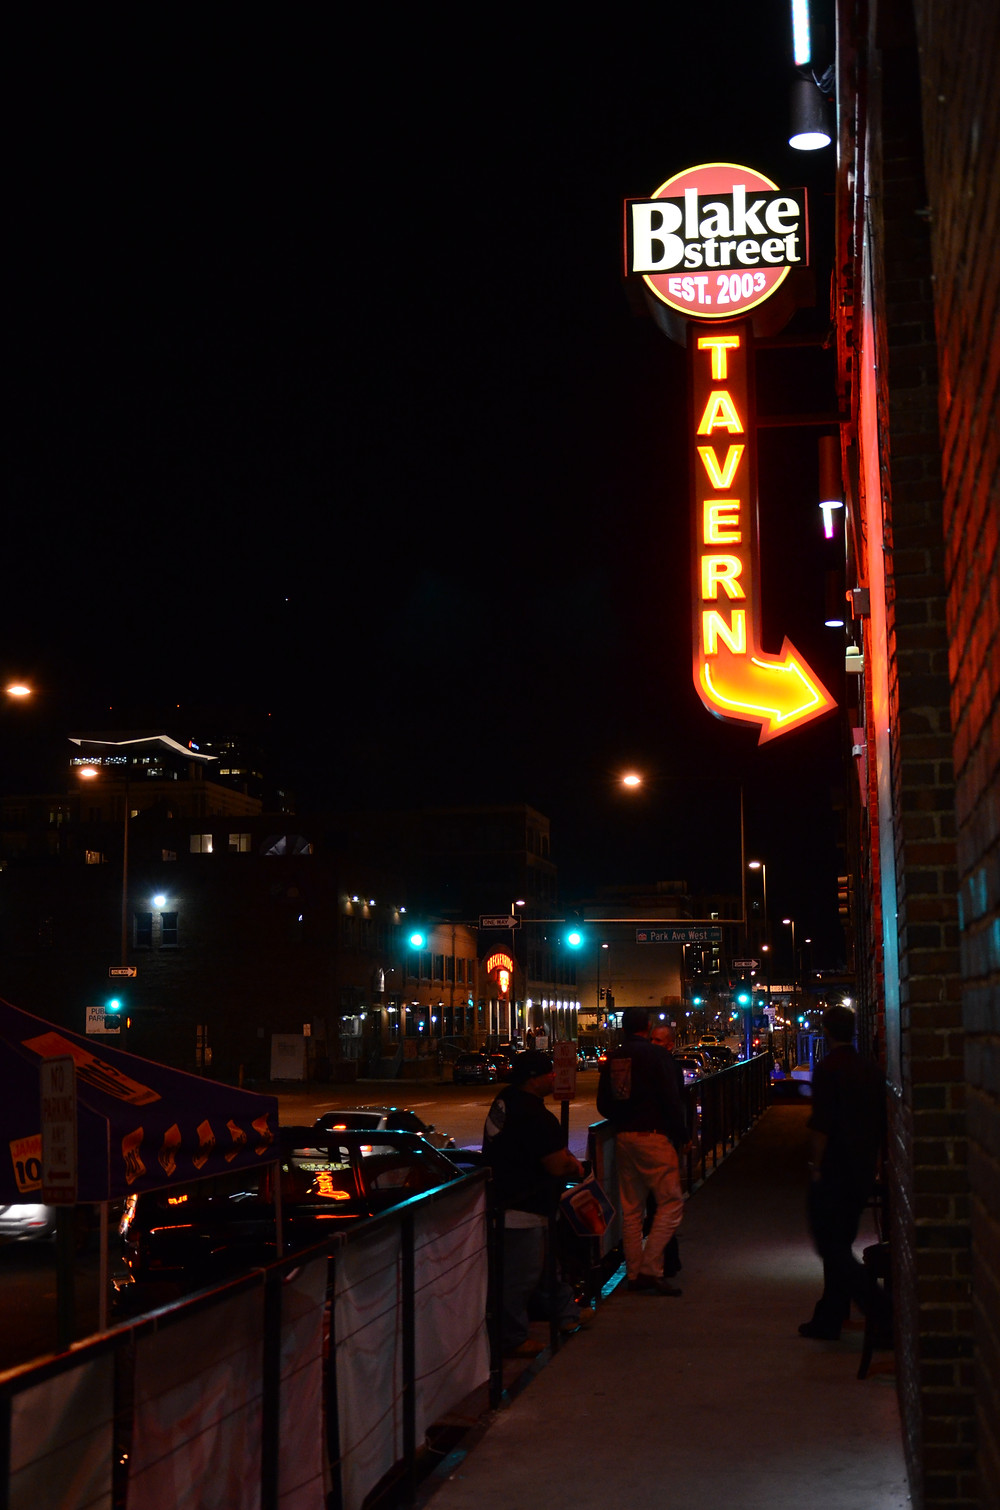 Late Night Food Denver - Blake Street Tavern